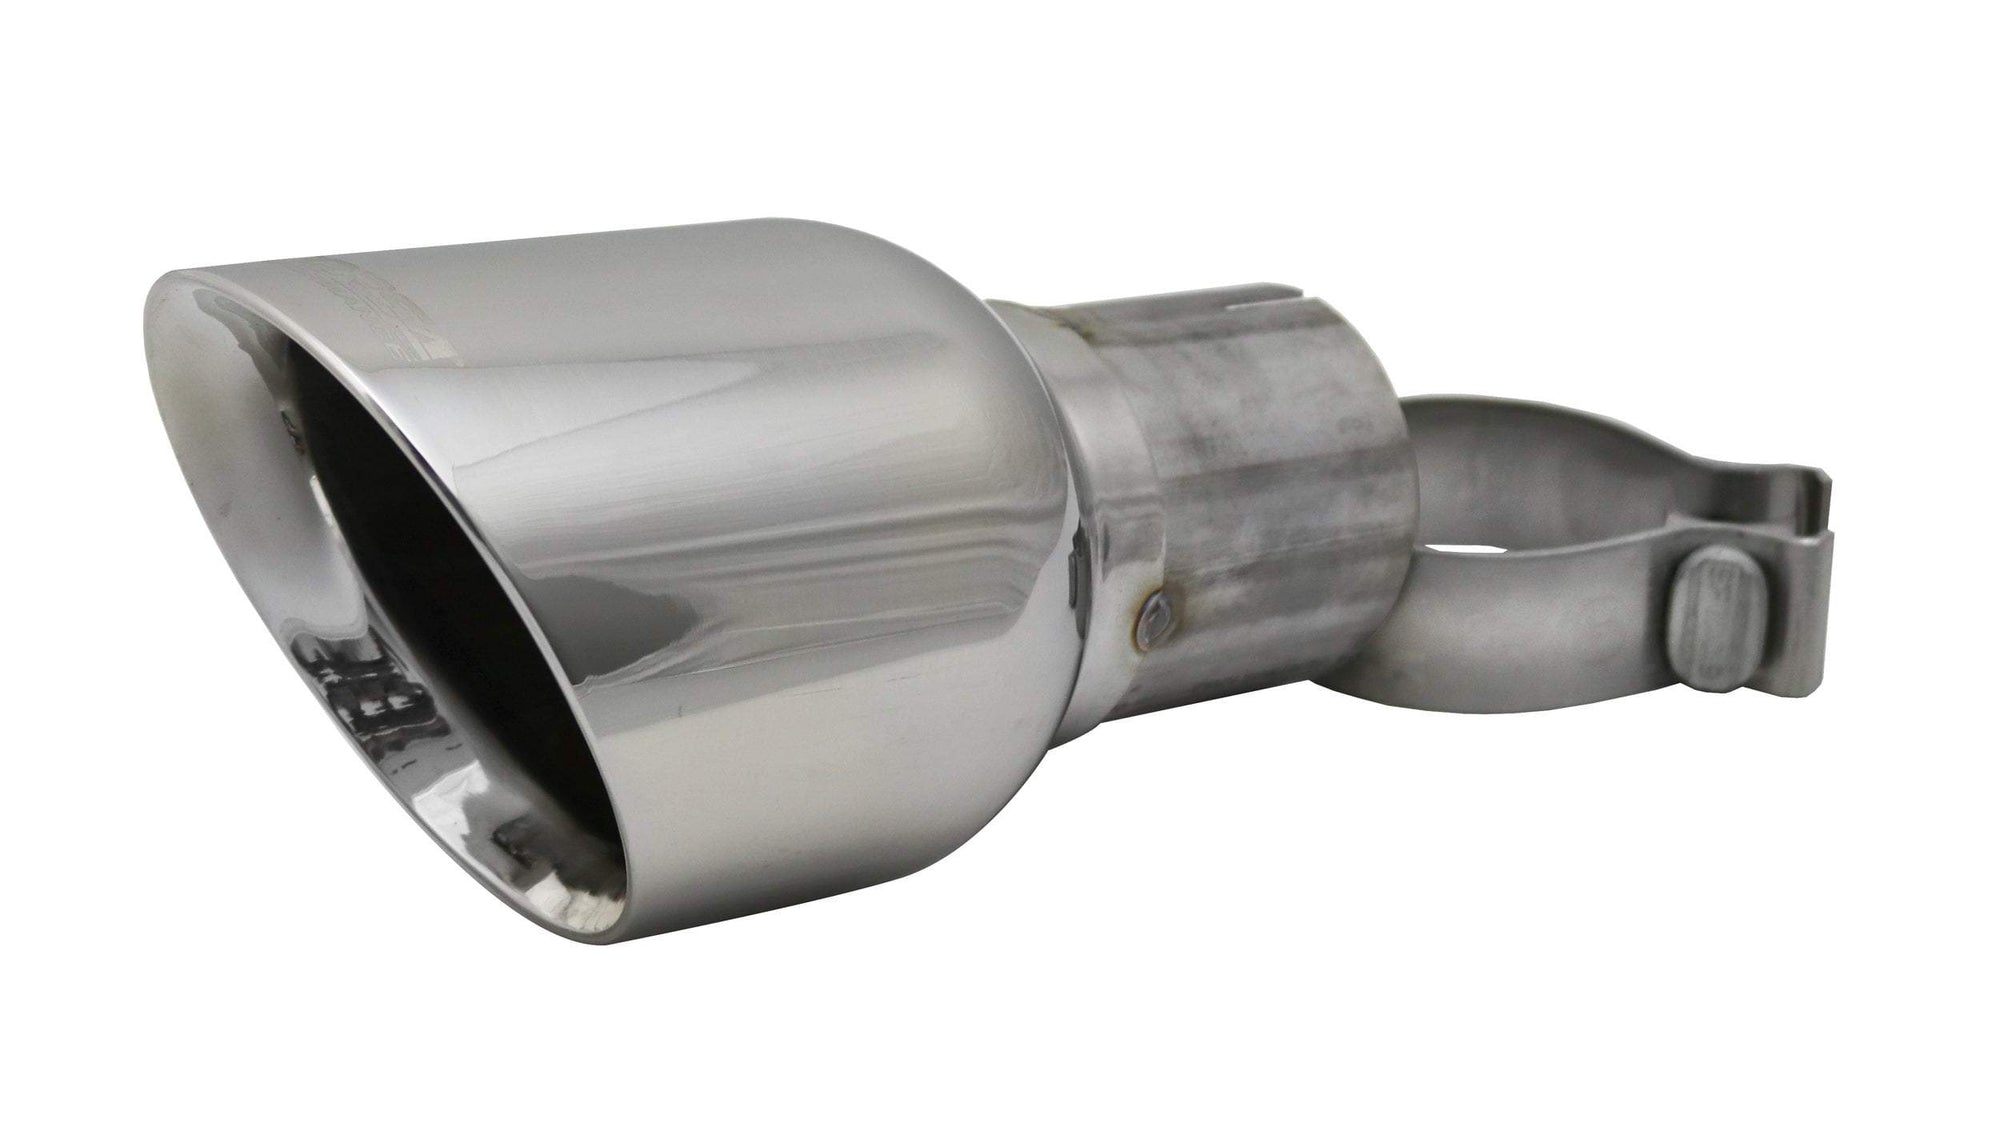 "CORSA PERFORMANCE Tip Kit Polished Tip Kit - Single 4.5"" Tip w/2.75"" diameter pipe (TK008)"